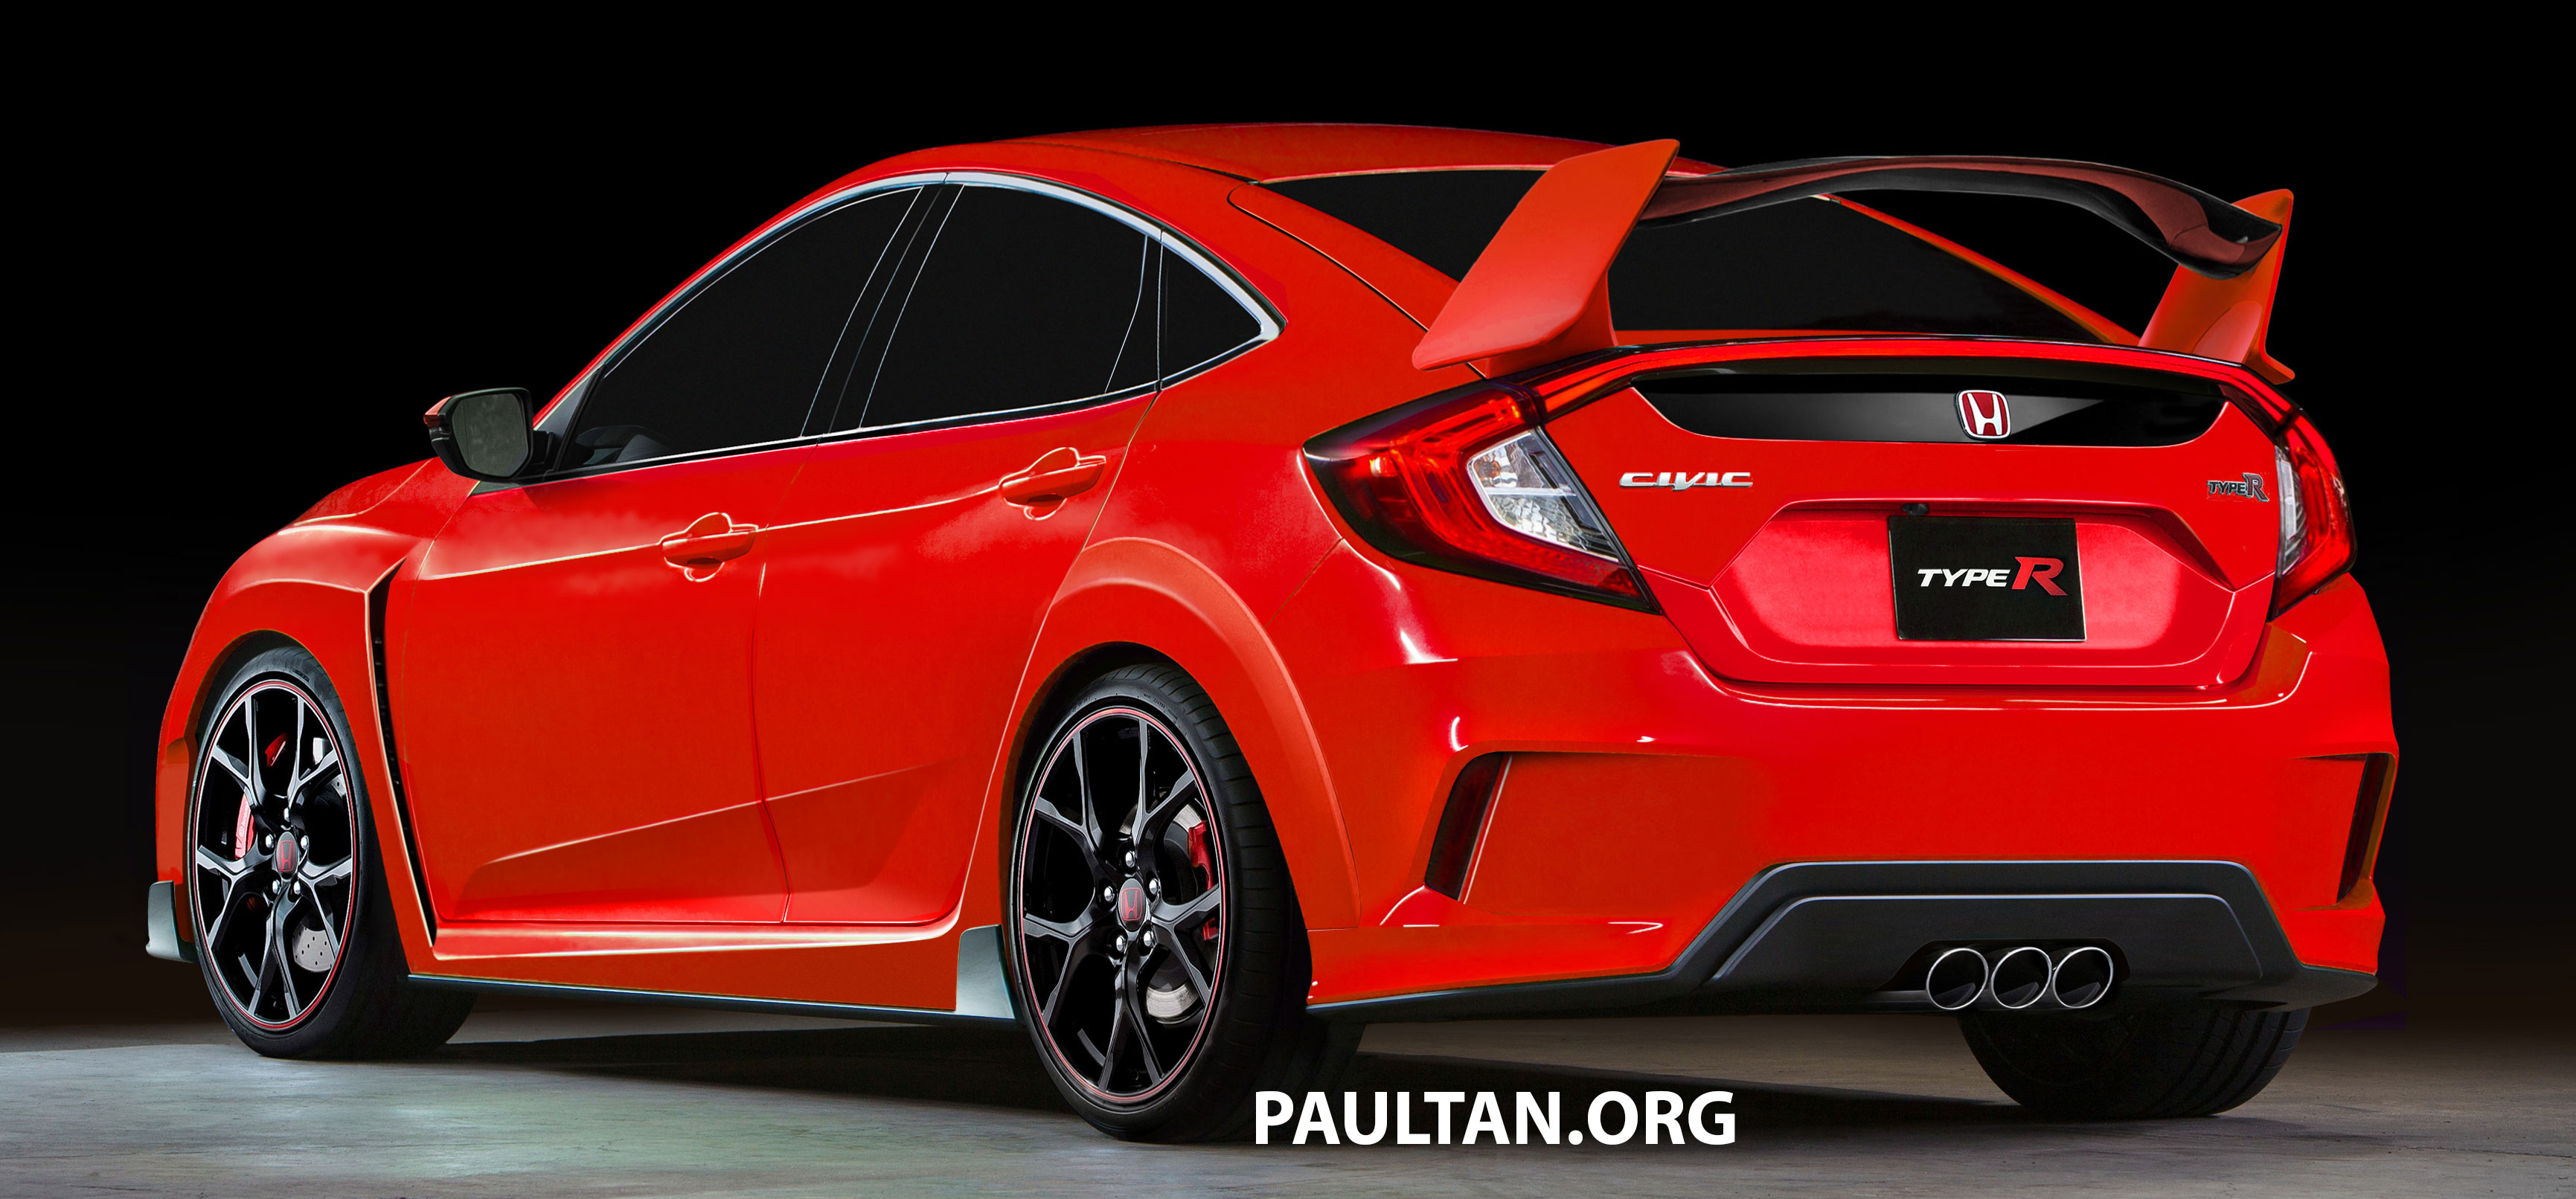 2017 Honda Civic Type R hot hatch rendered in red Image 400070